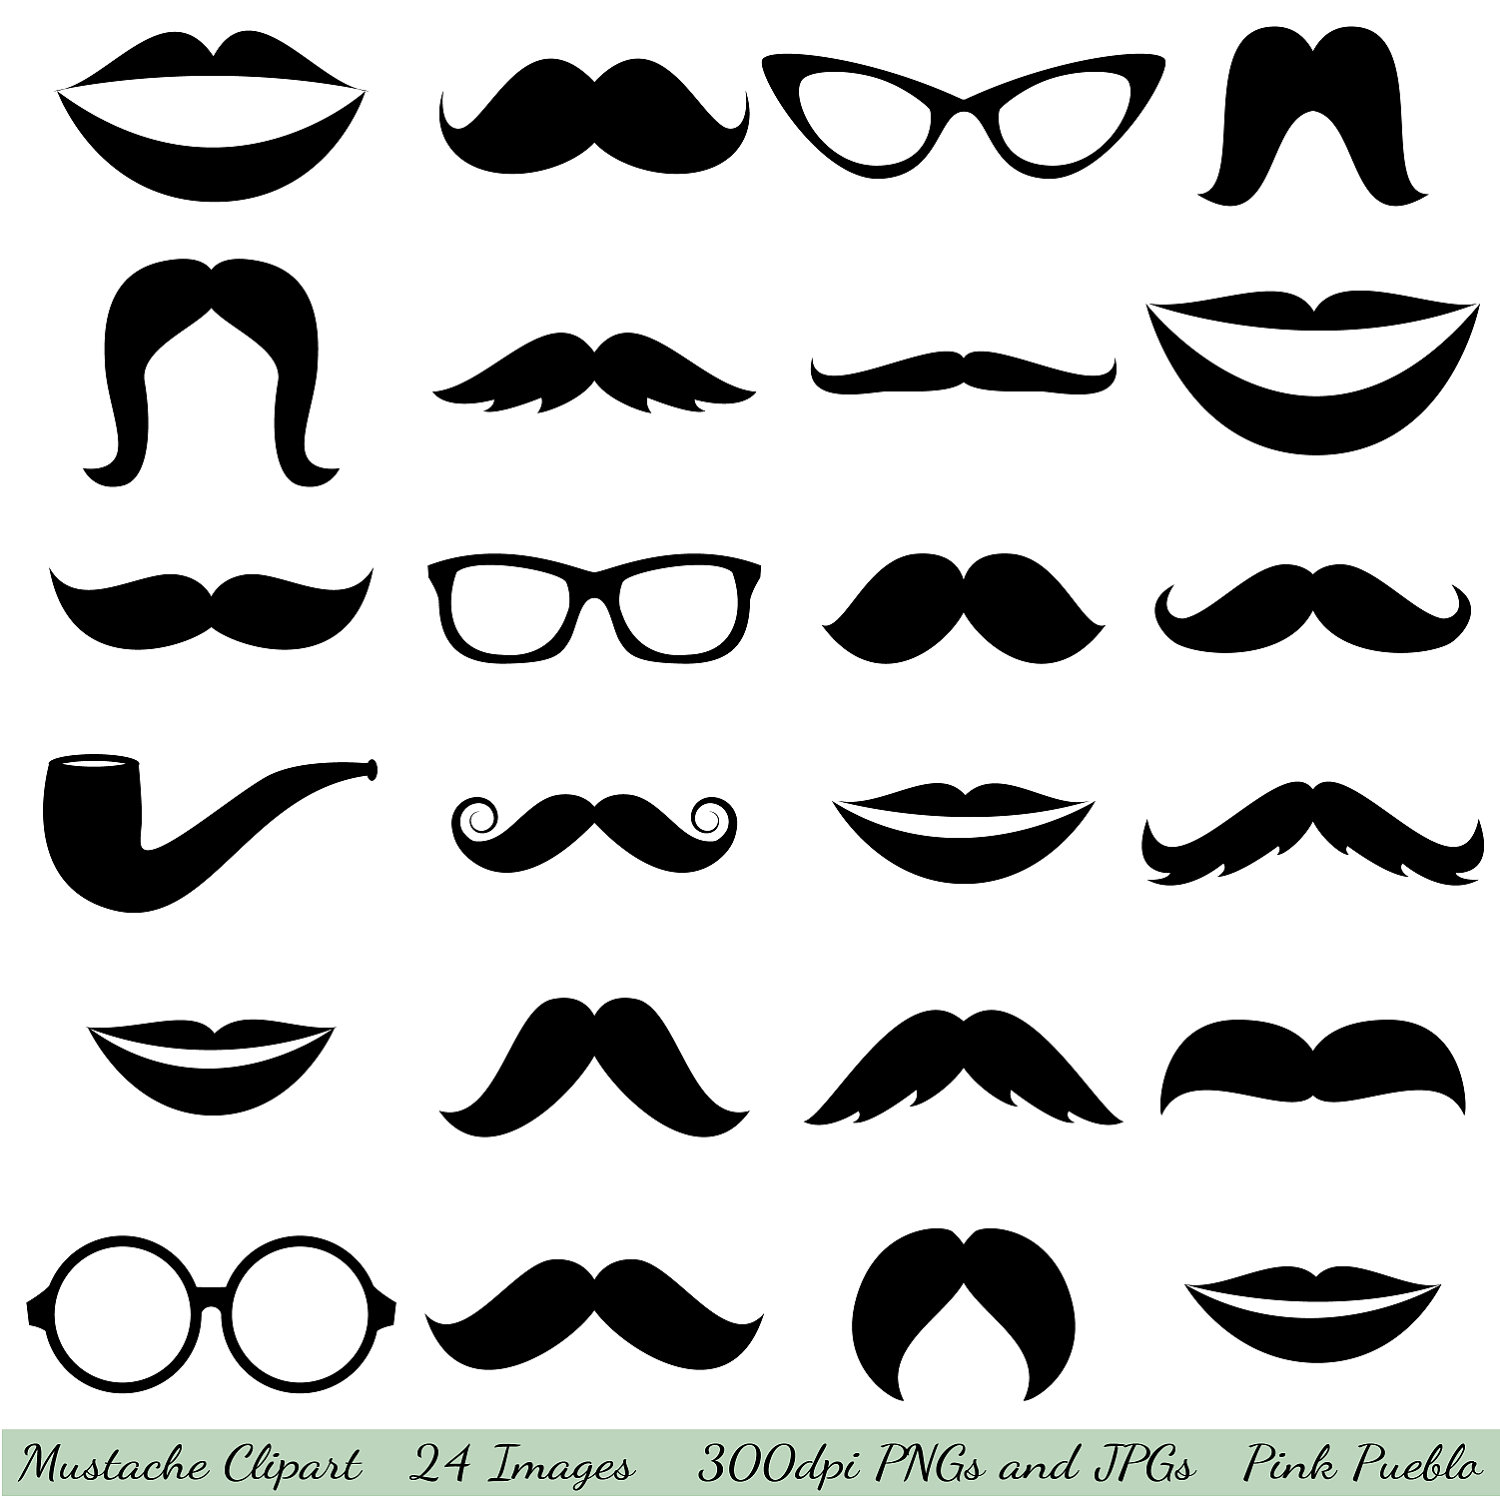 hight resolution of mustache cliparts